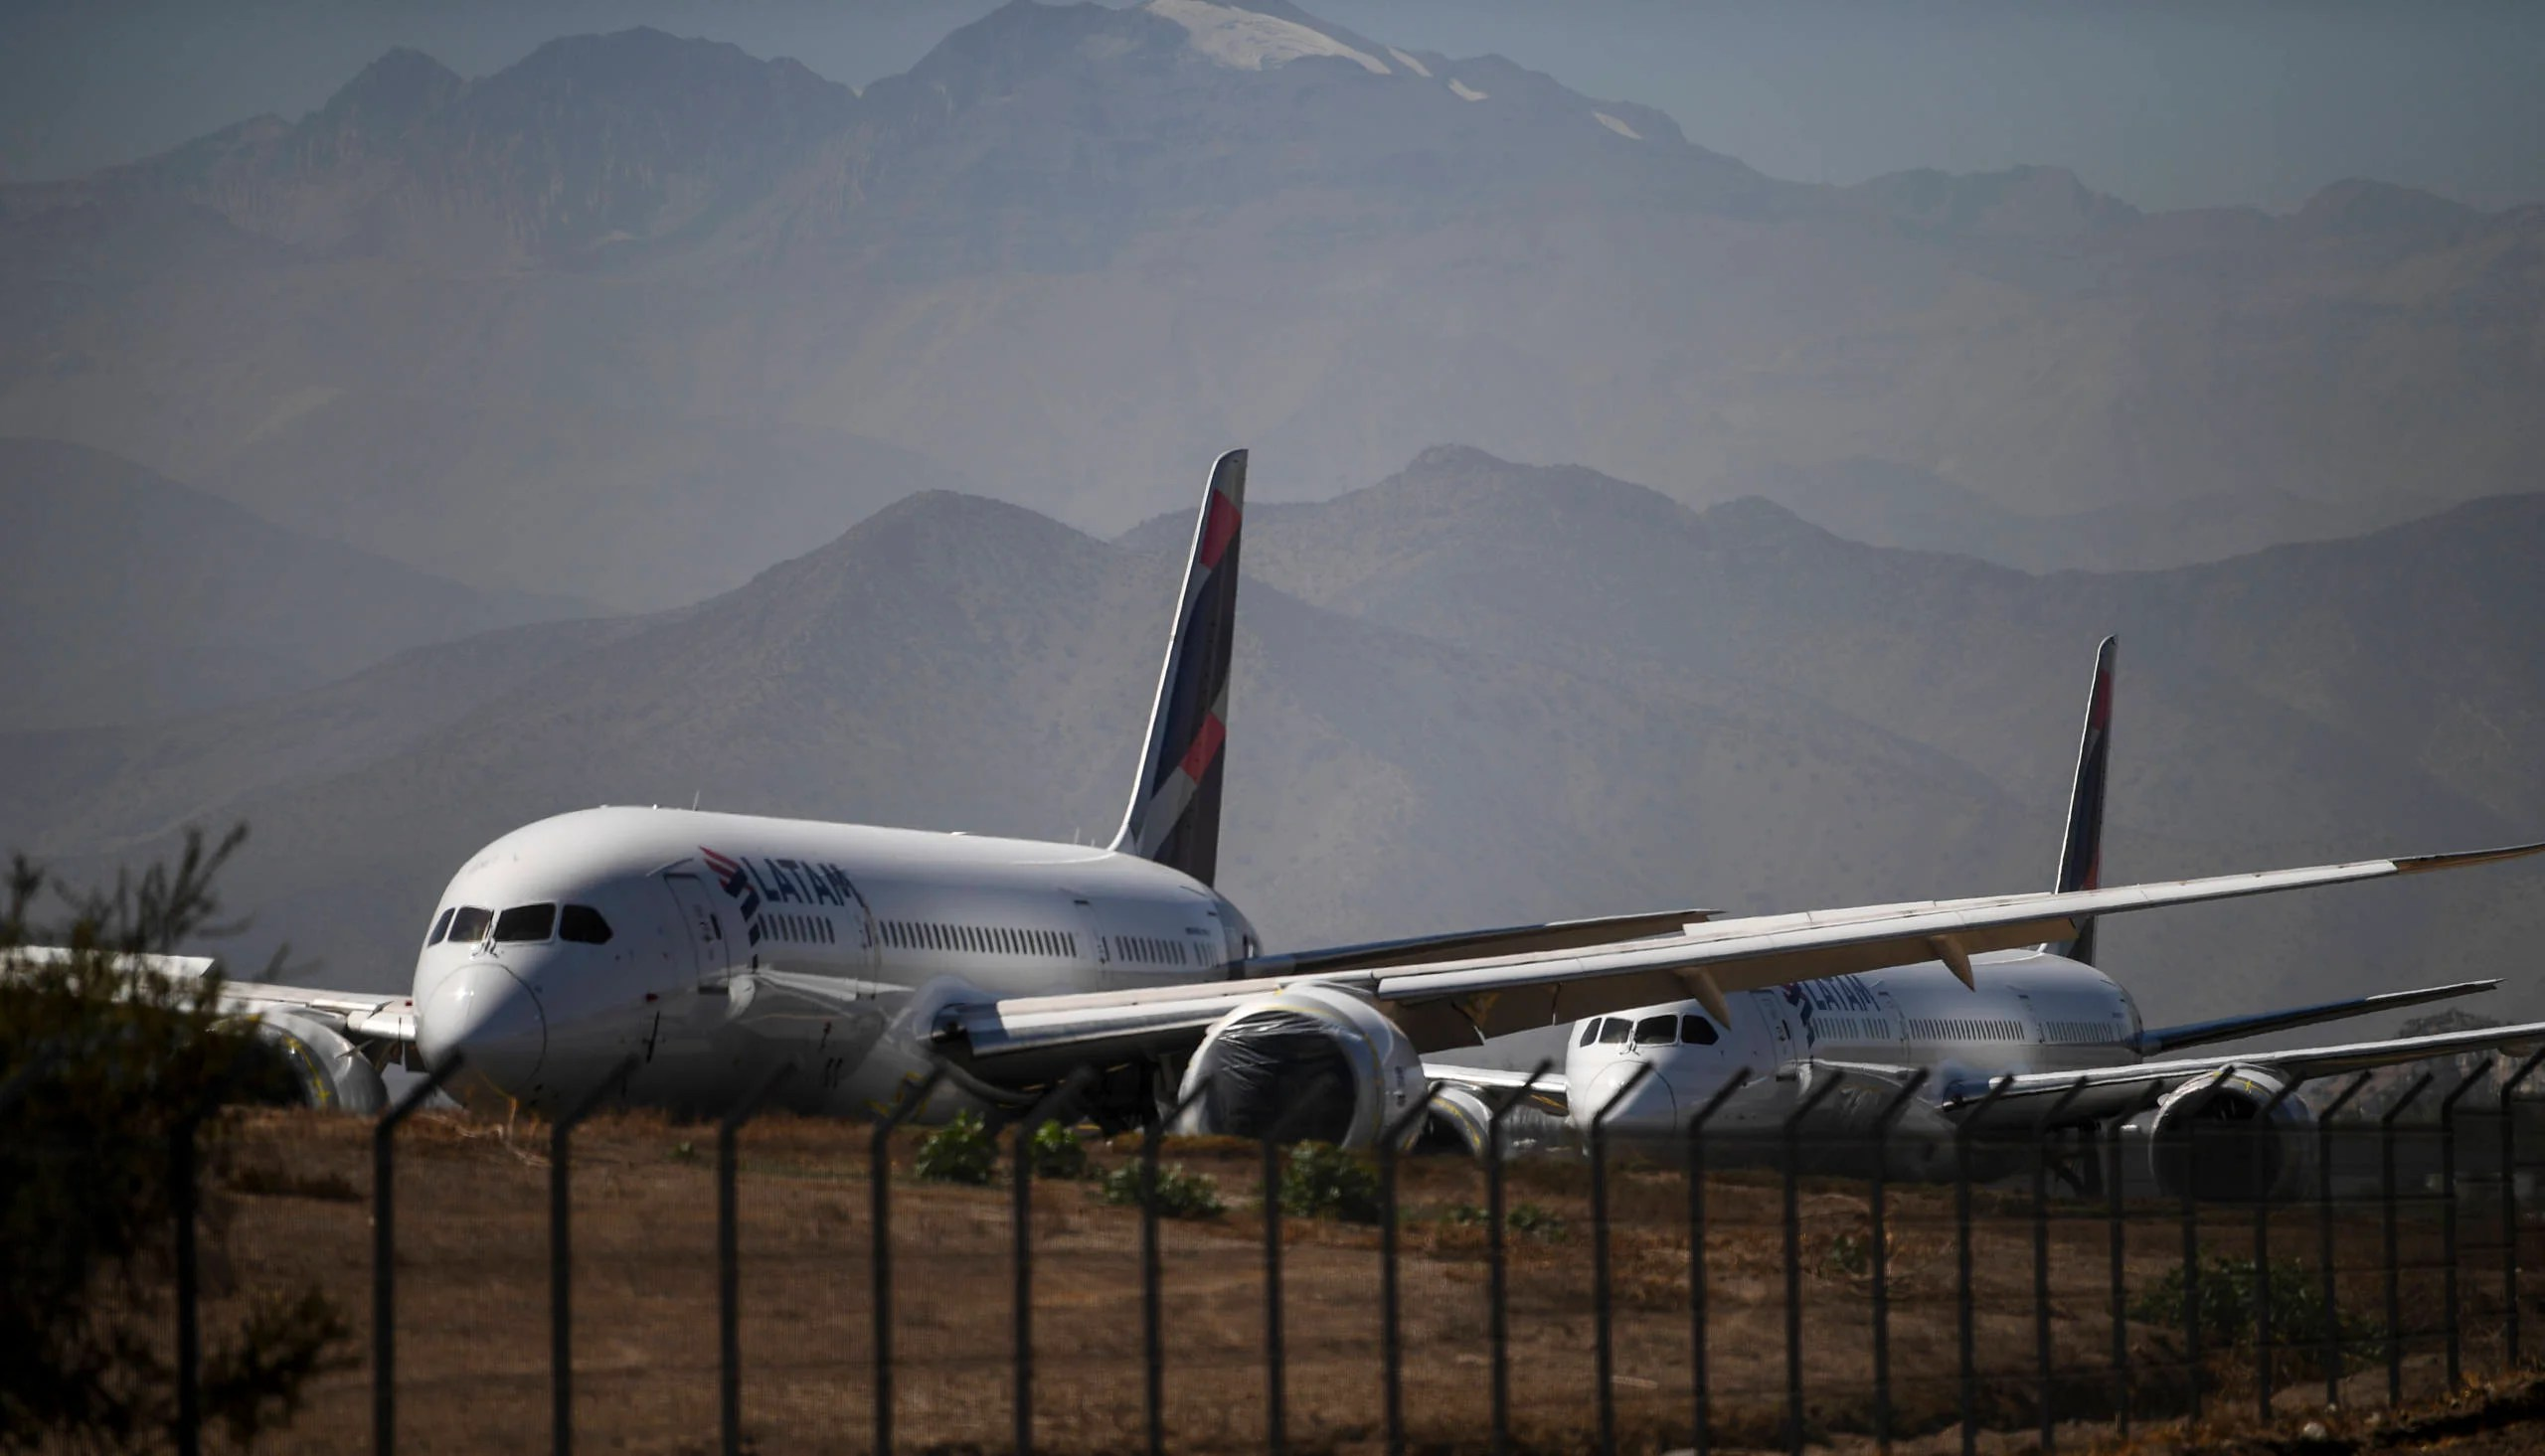 LATAM Airlines outlines restructuring plans after Chapter 11 filing